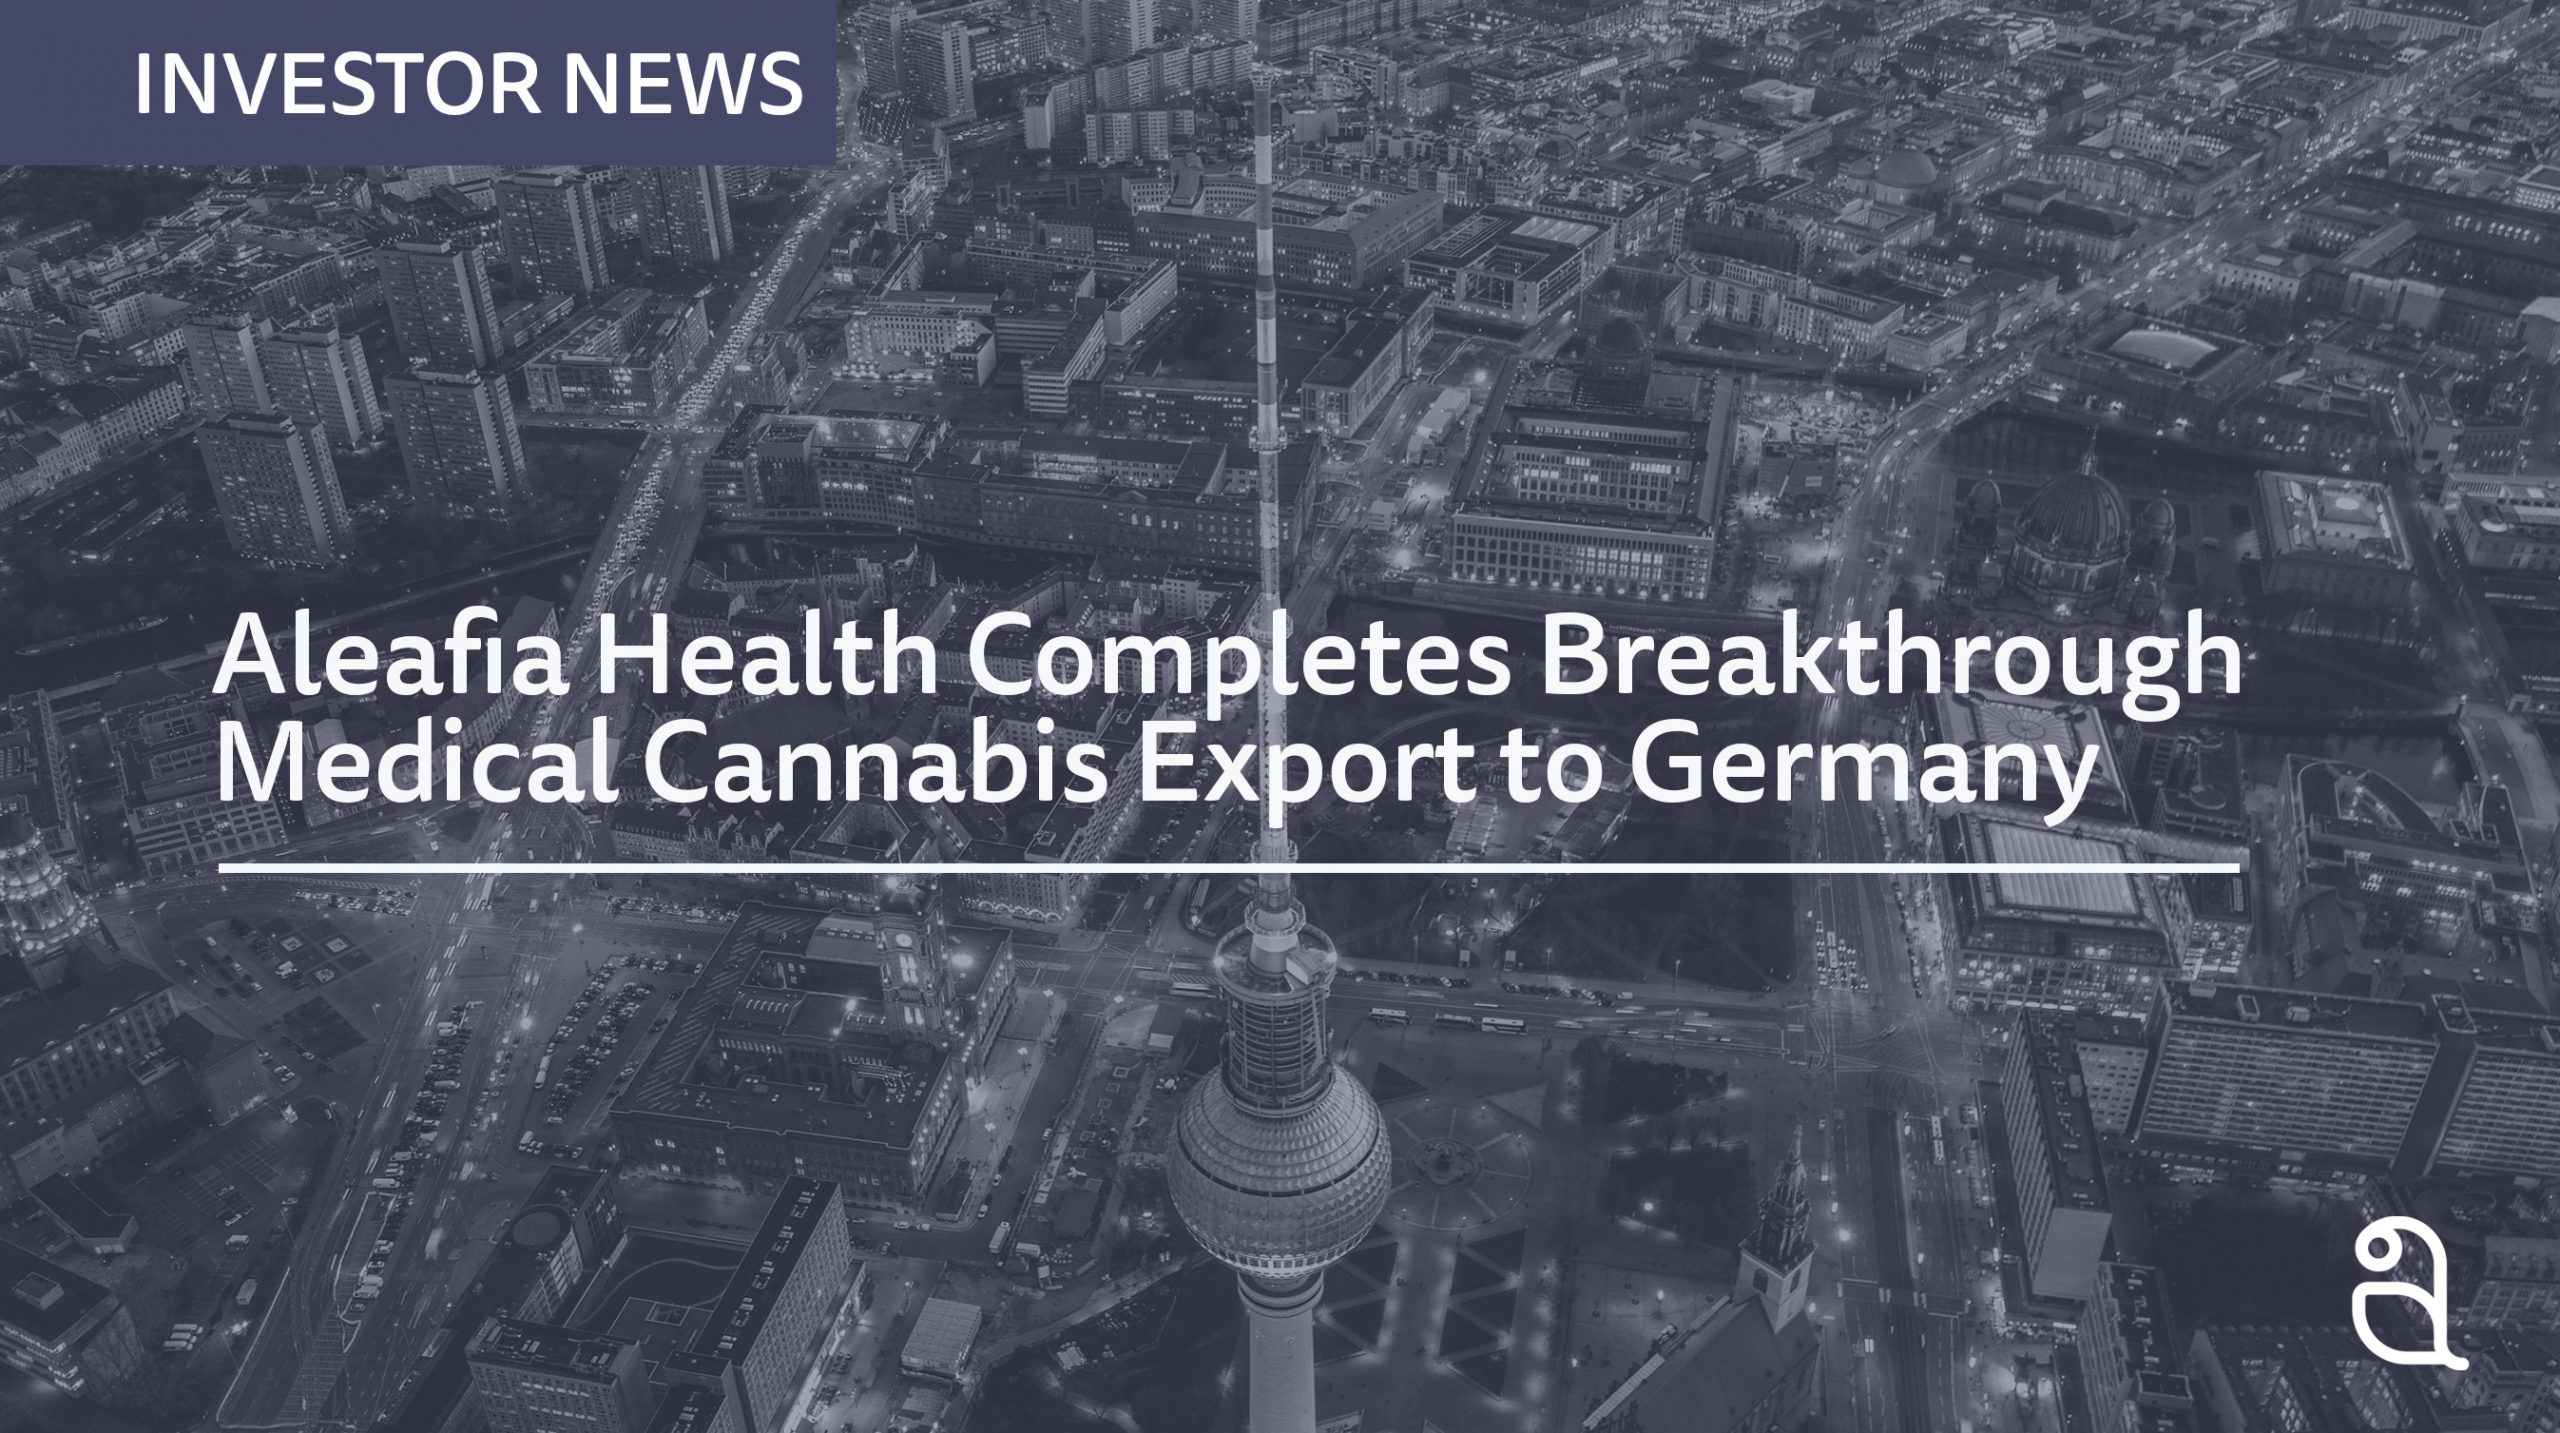 Aleafia Health Completes Breakthrough Medical Cannabis Export to Germany